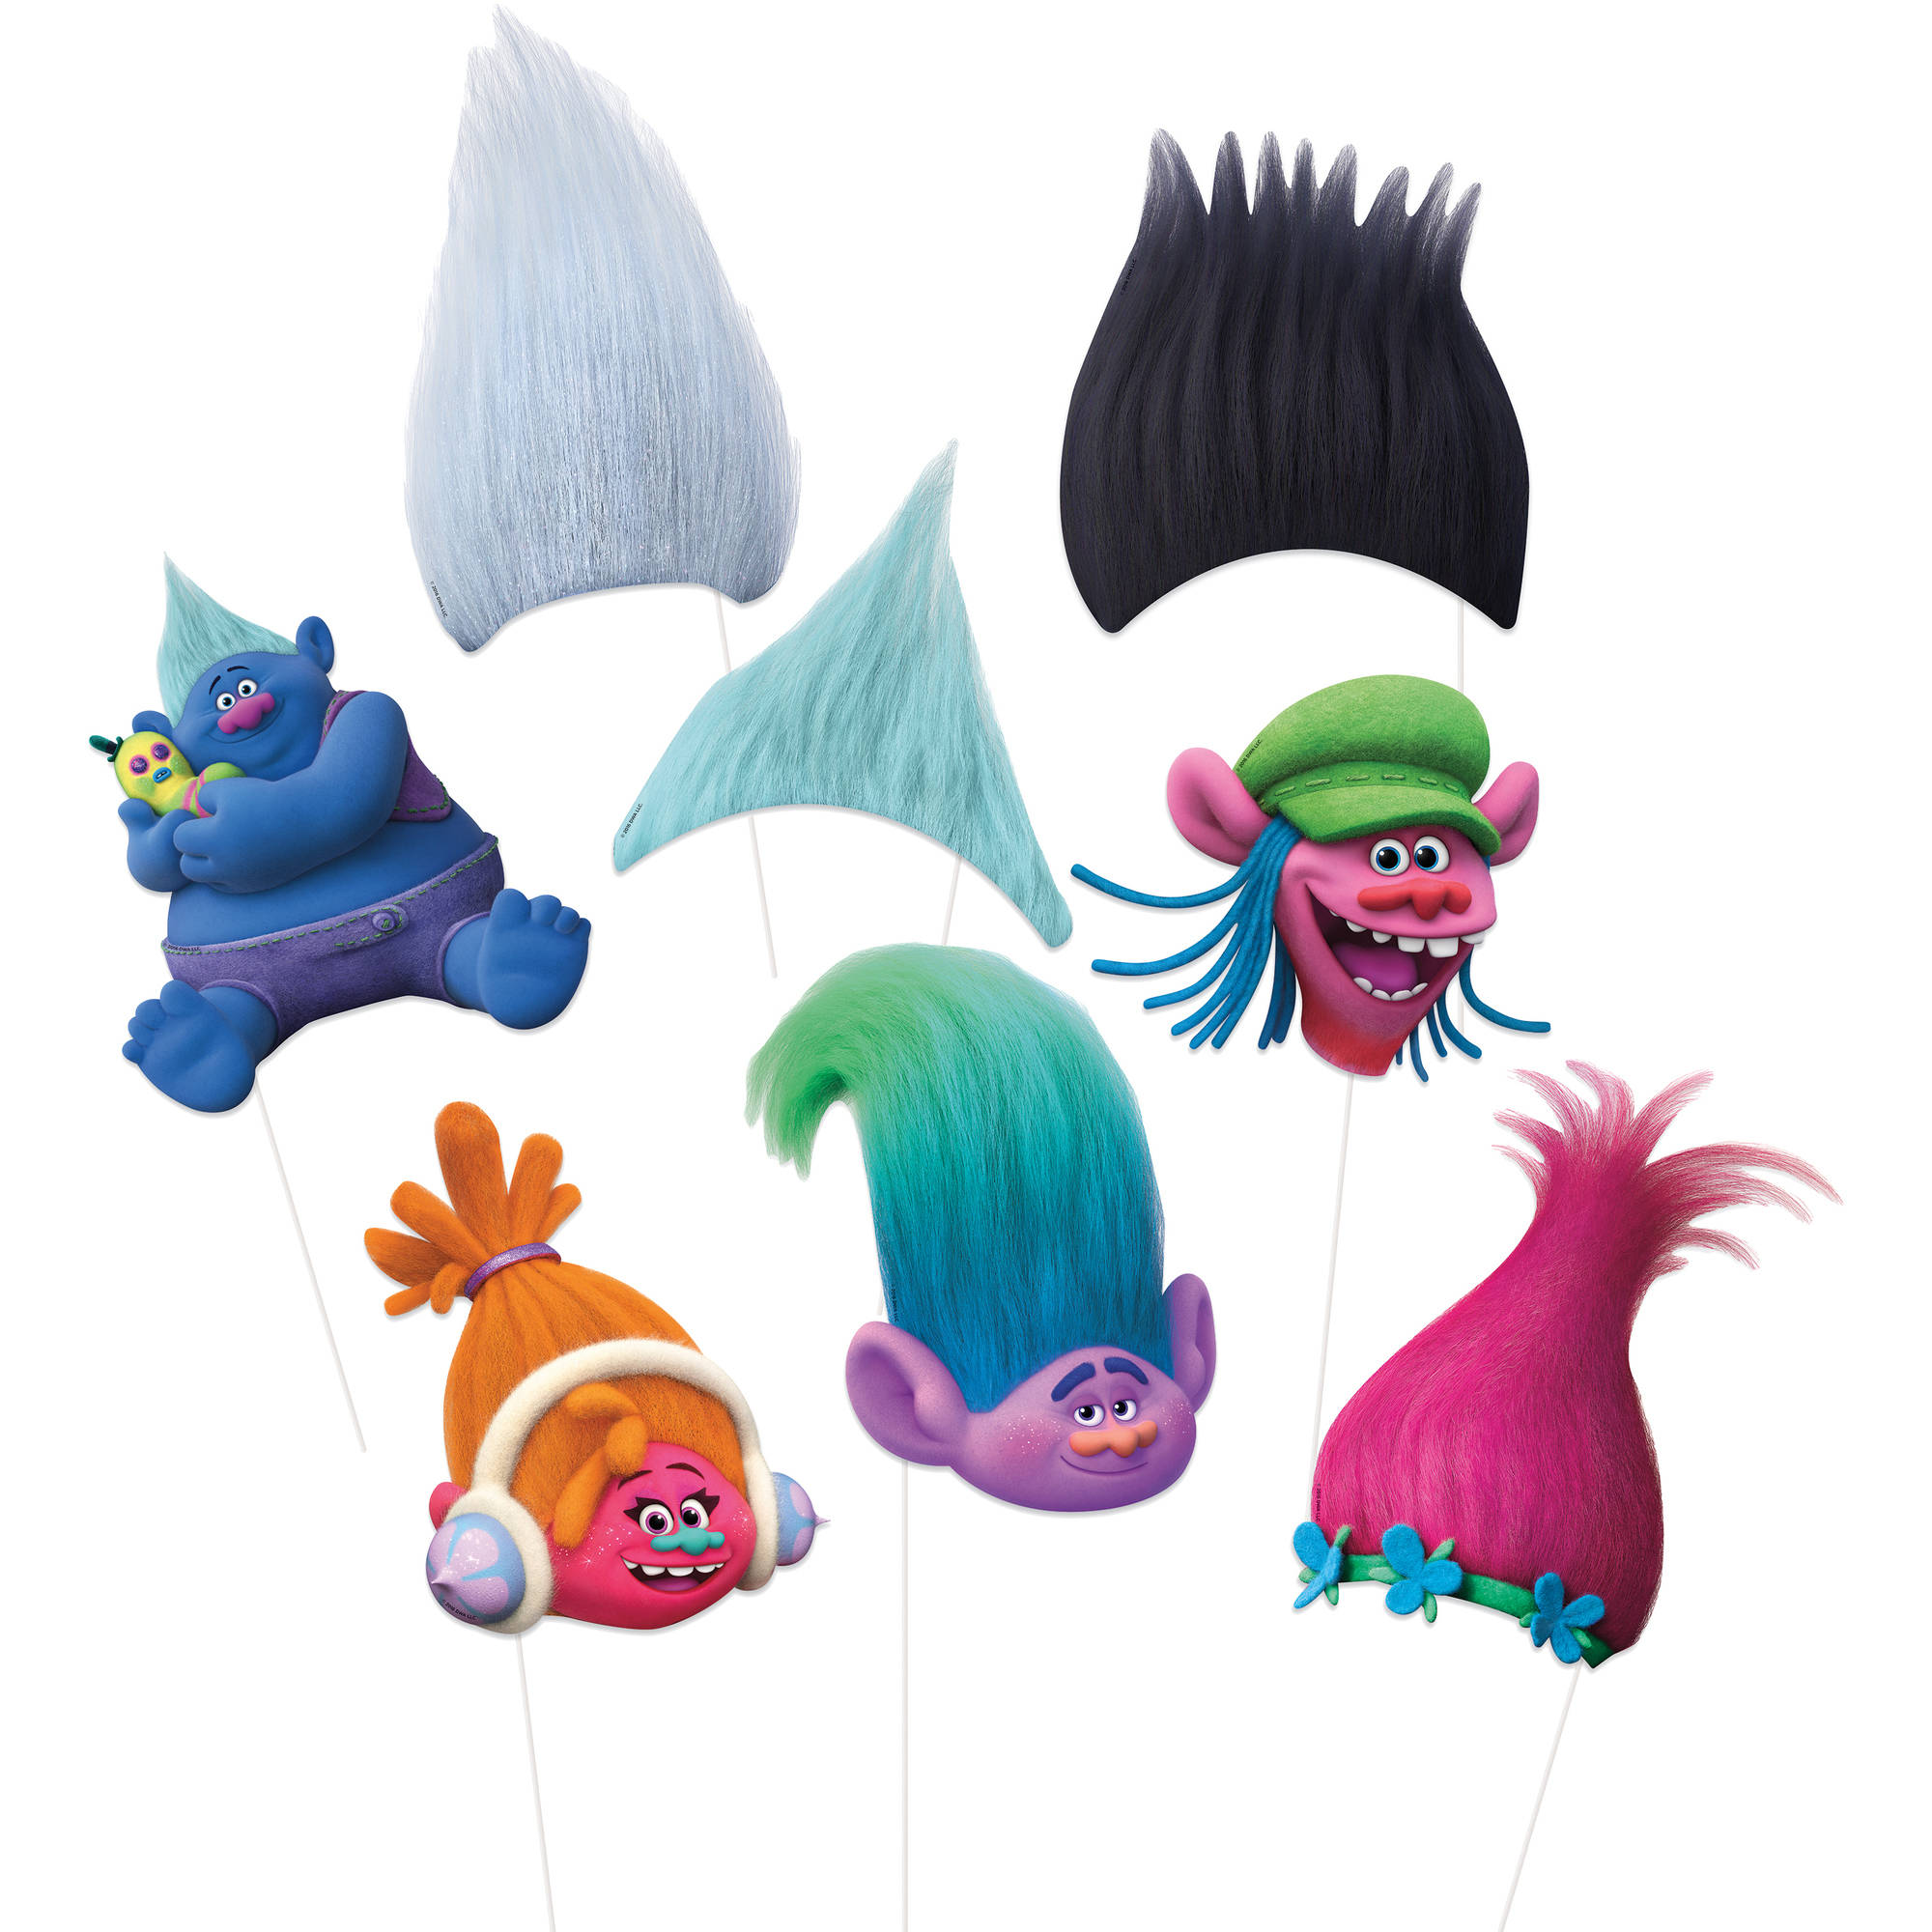 Trolls Photo Booth Props, 8-Piece